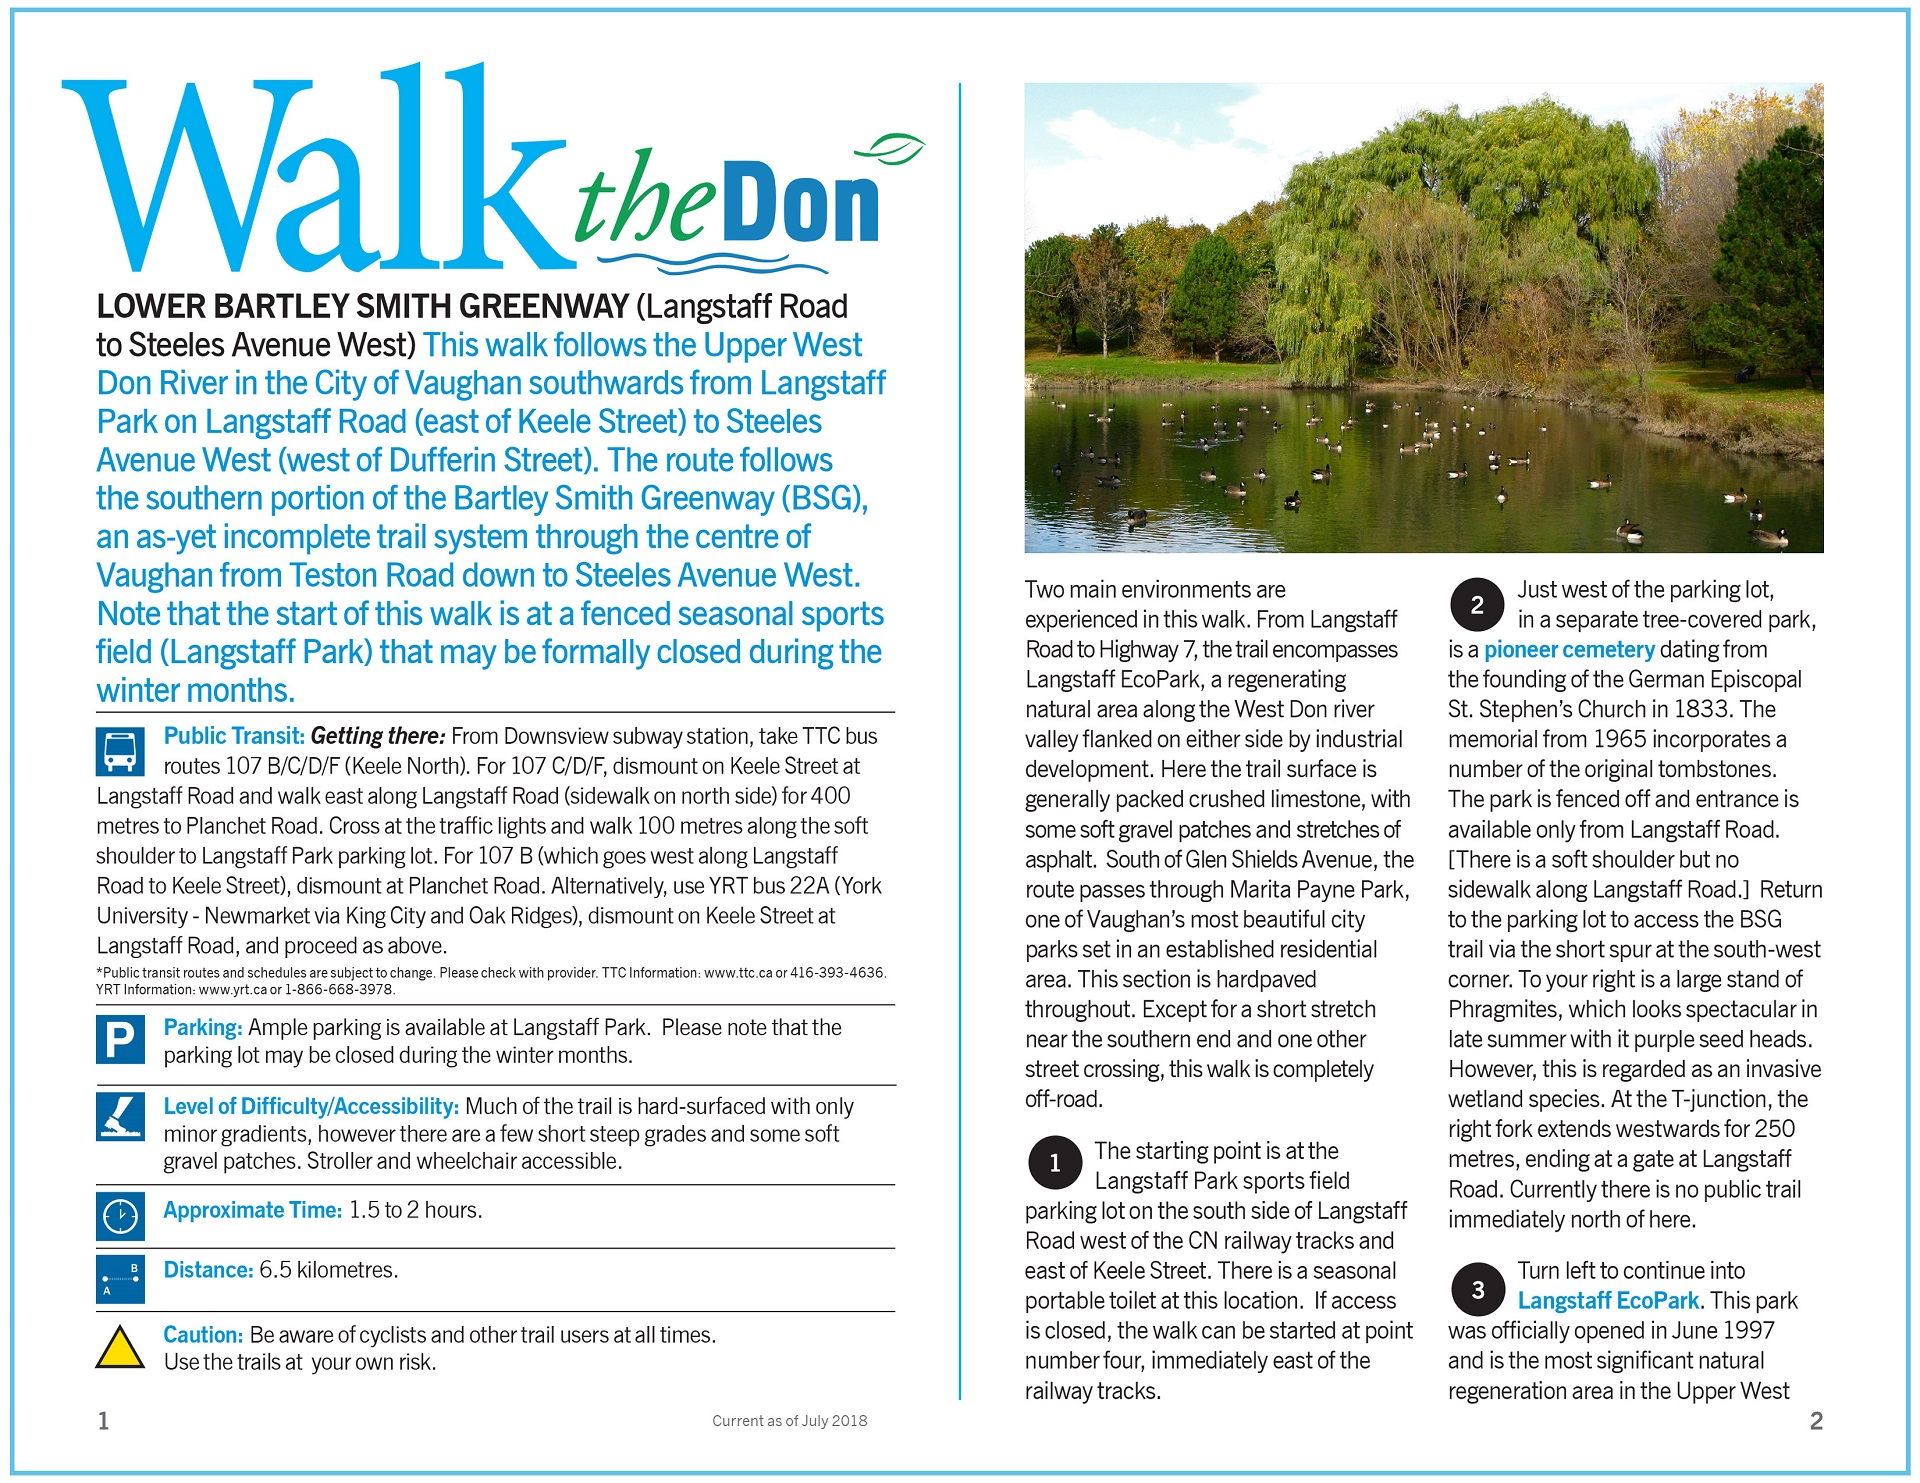 Walk the Don - Lower Bartley Smth Greenway Trail Guide